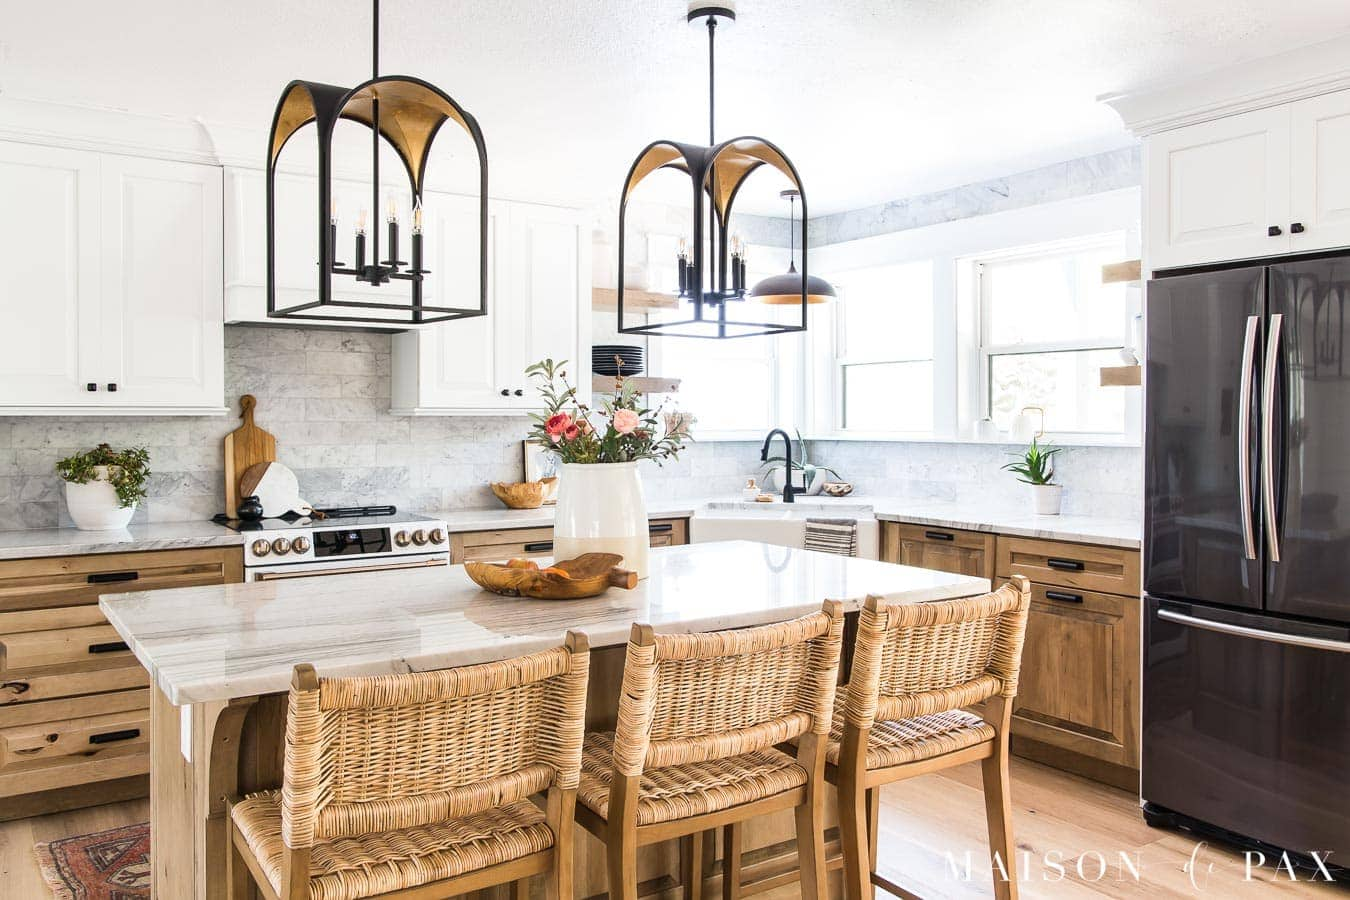 A stunning white and wood kitchen with wood cabinets, a white apron sink and statement light fixtures.